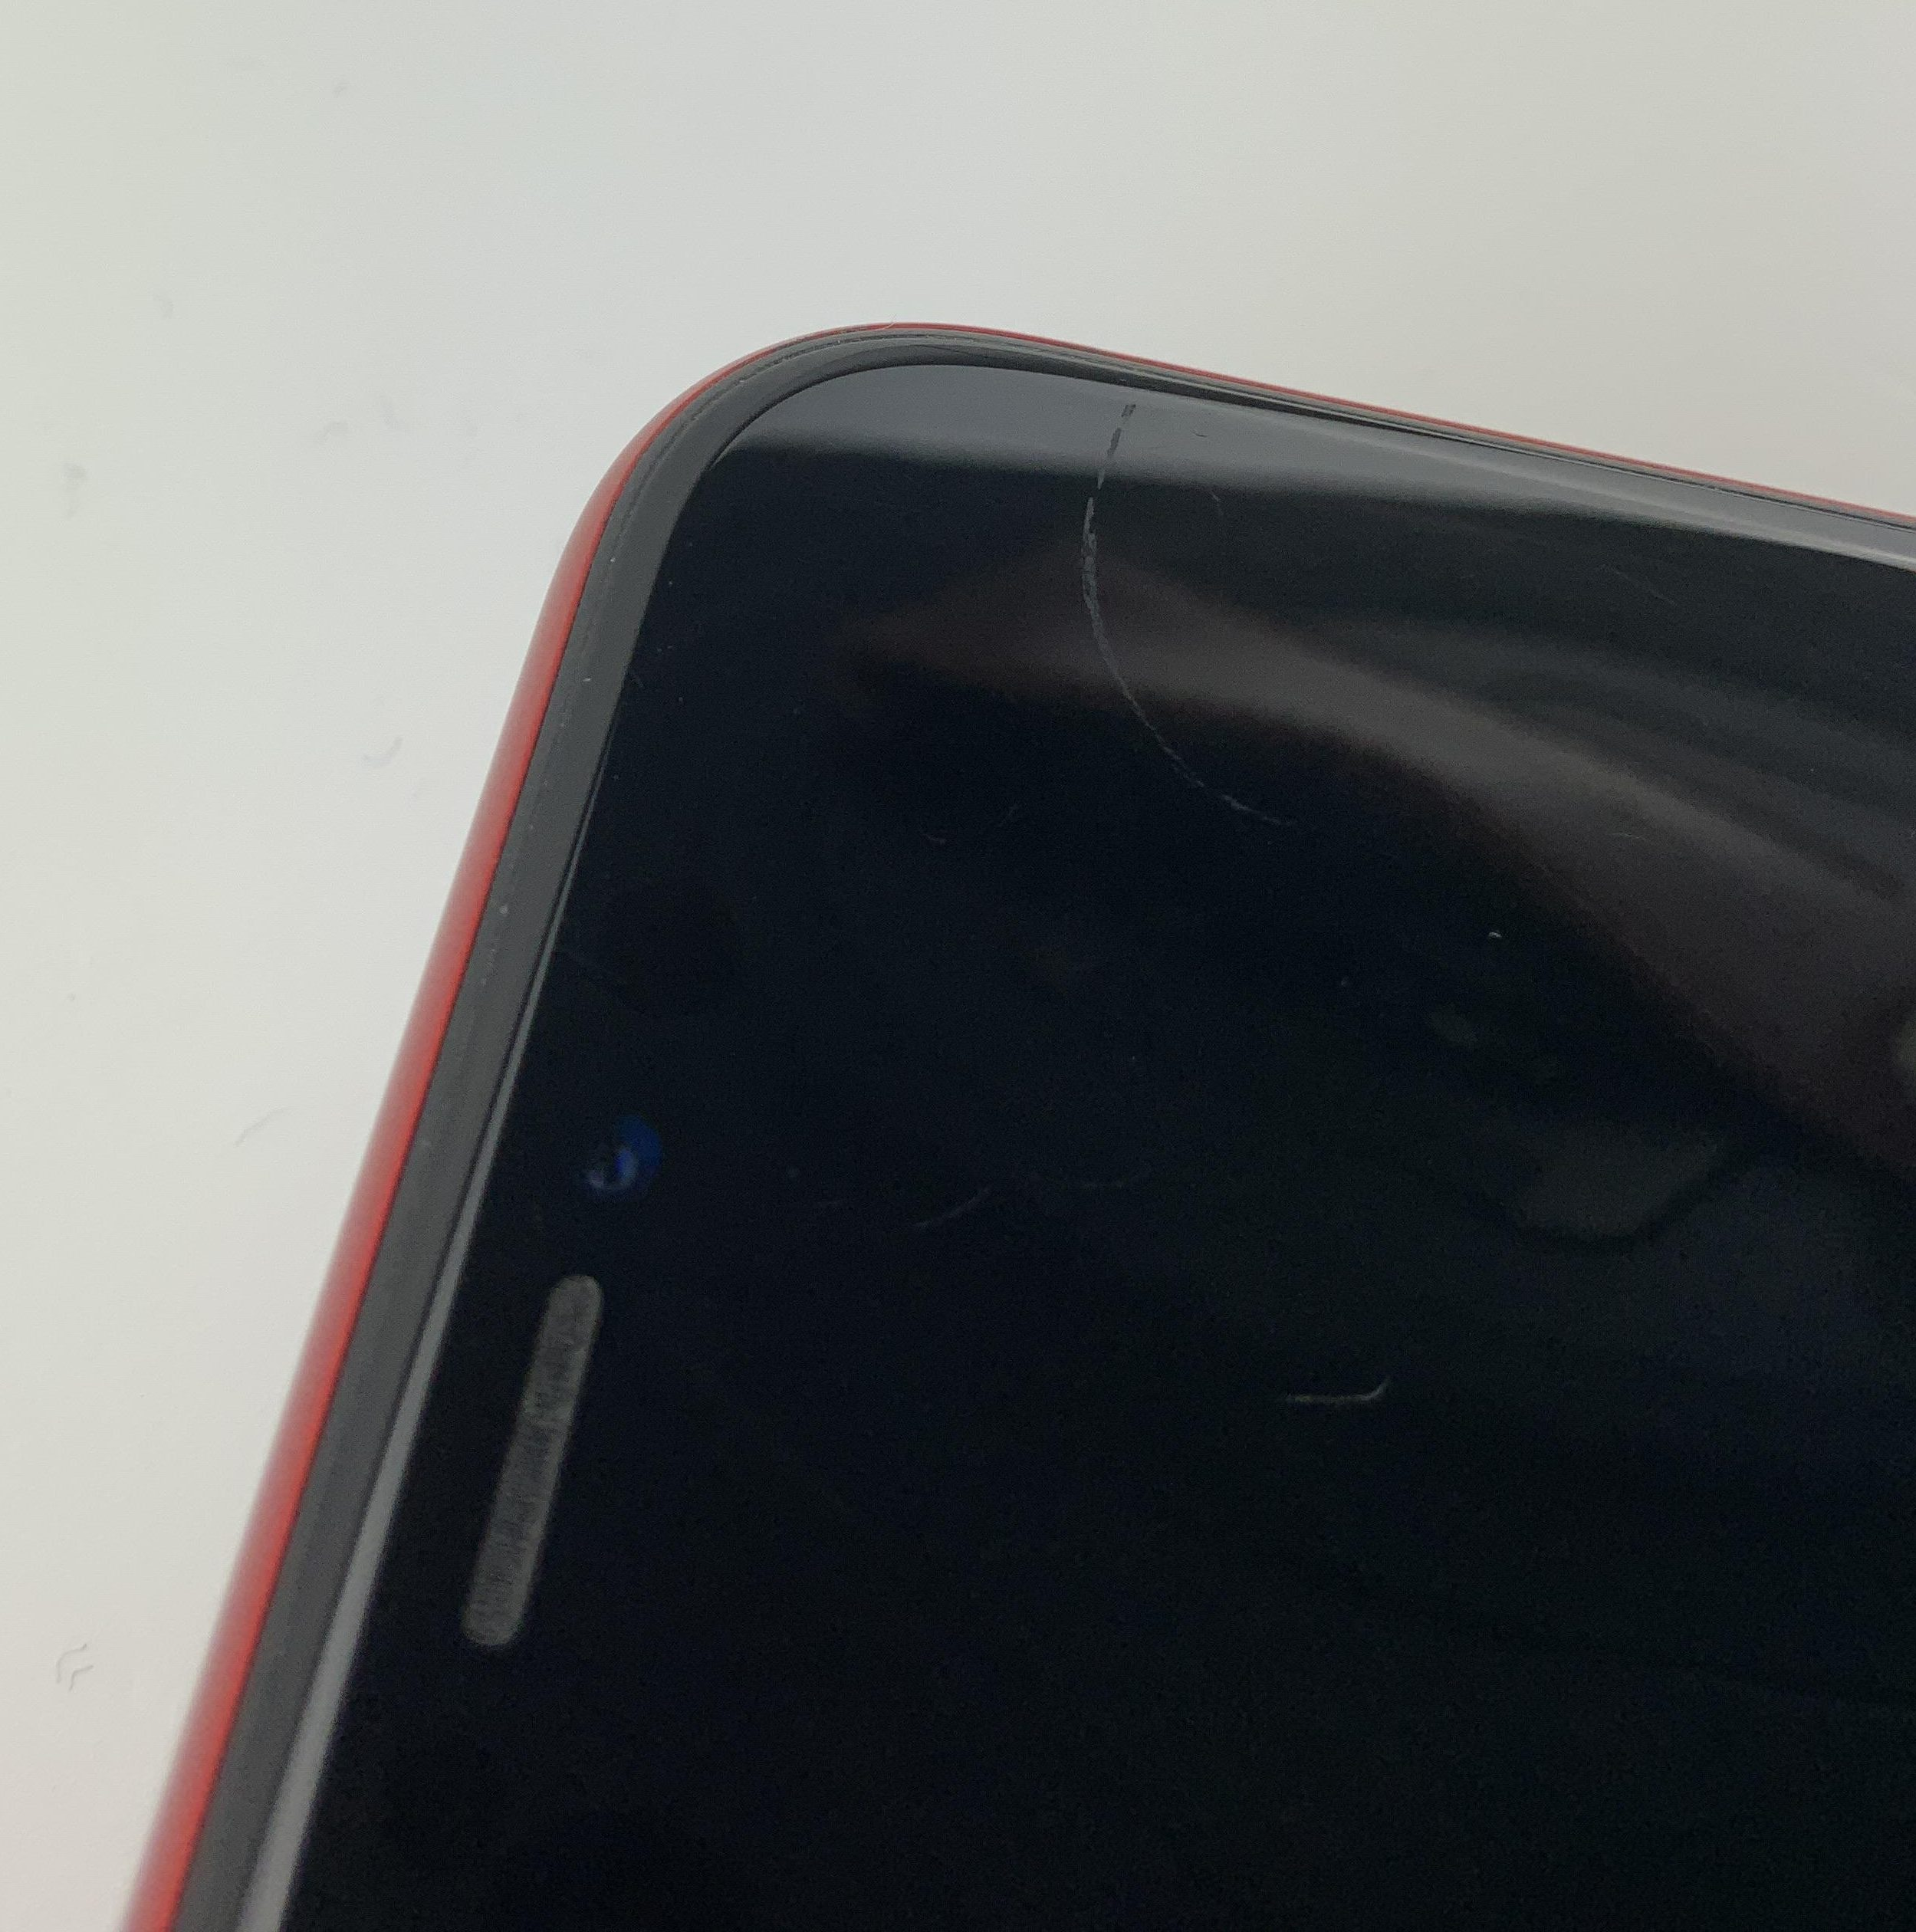 iPhone XR 64GB, 64GB, Red, Afbeelding 5